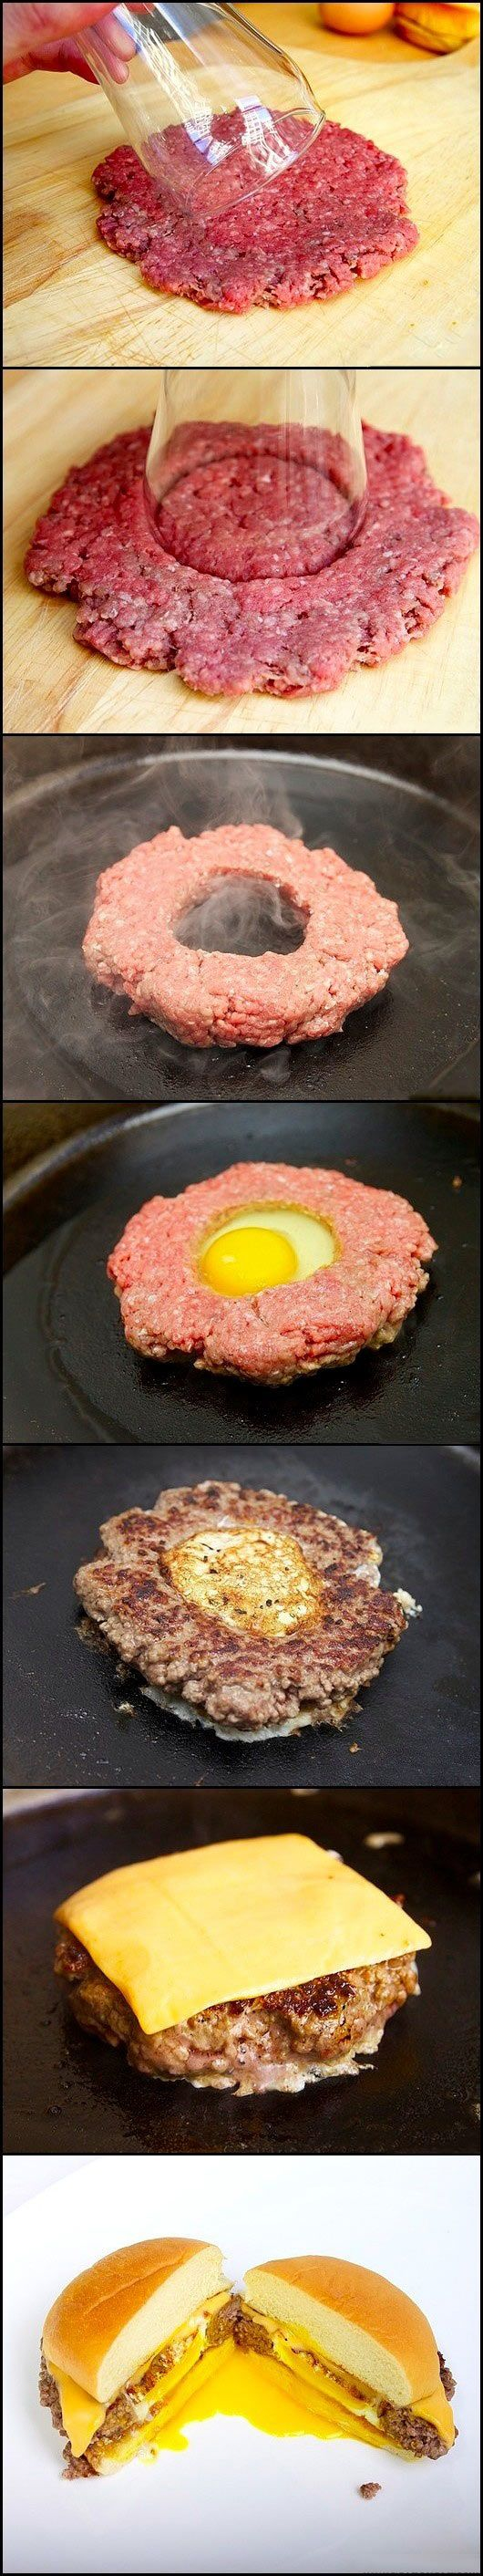 Burgers will never be the same…